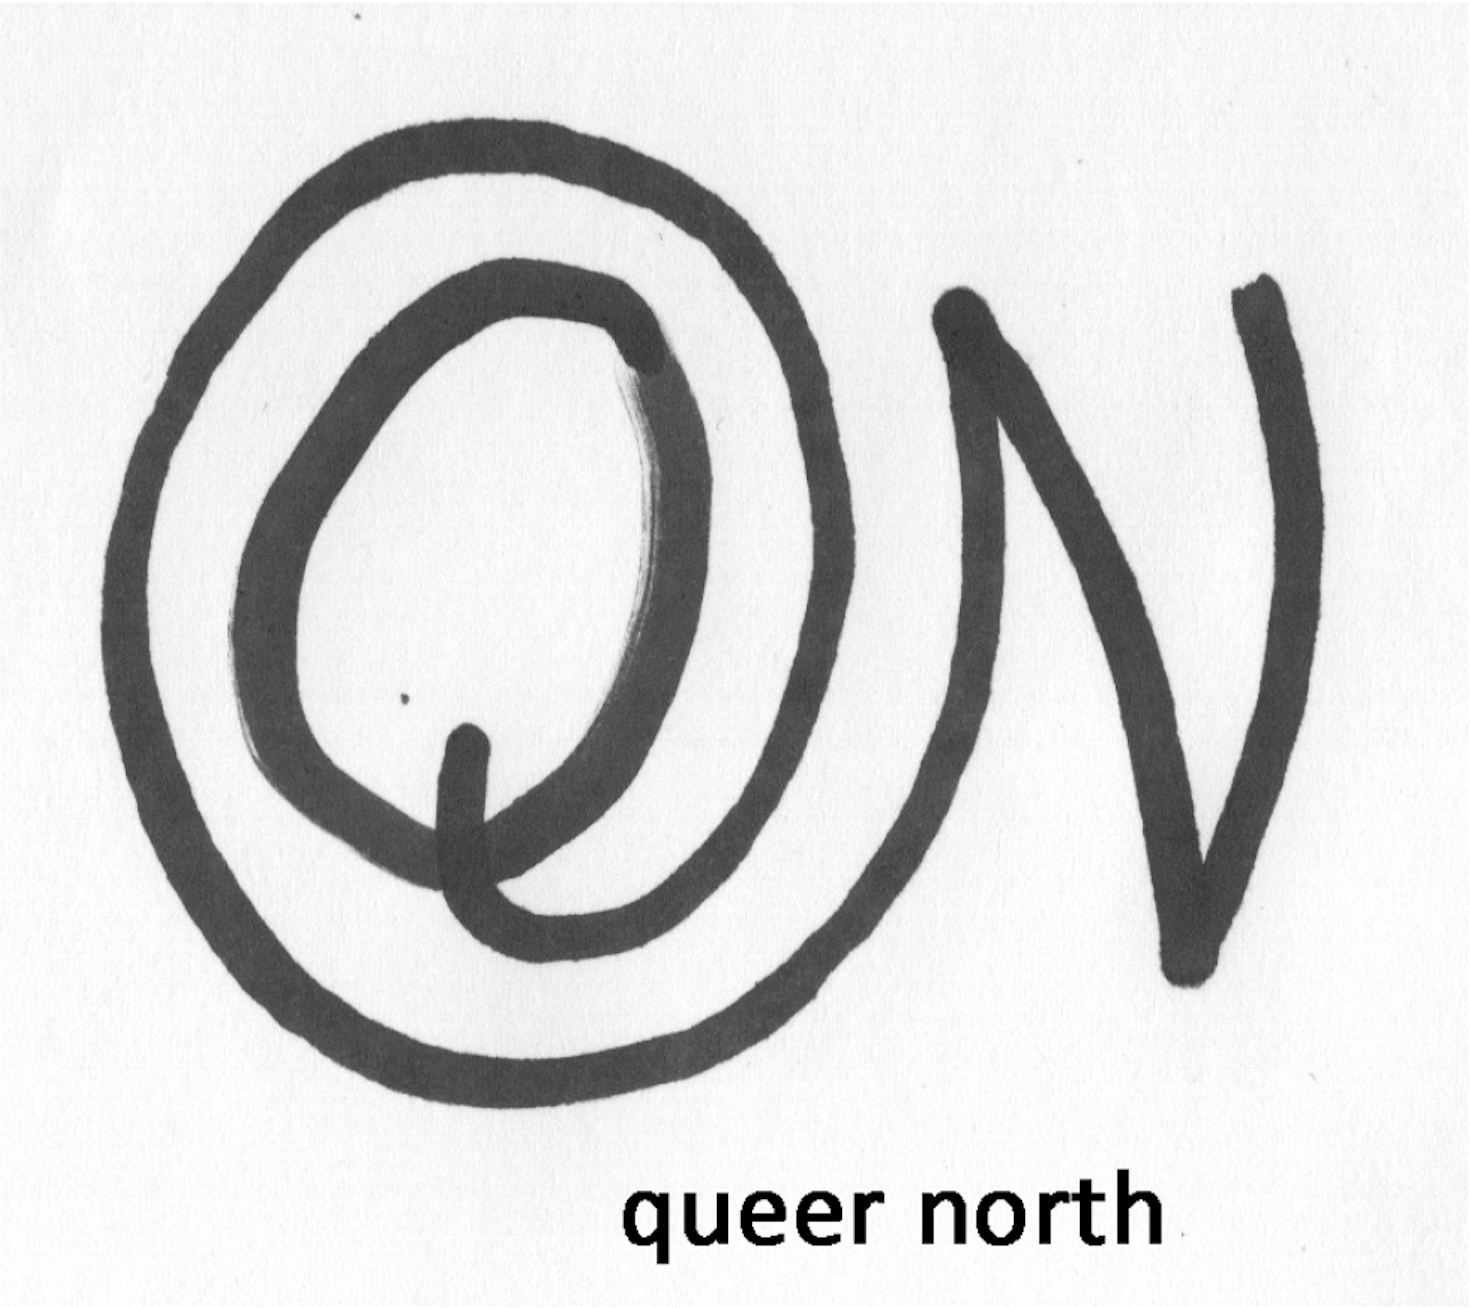 Queer North - Northern Centre For Contemporary Art was shortlisted for the $10,000 Haring Grant.